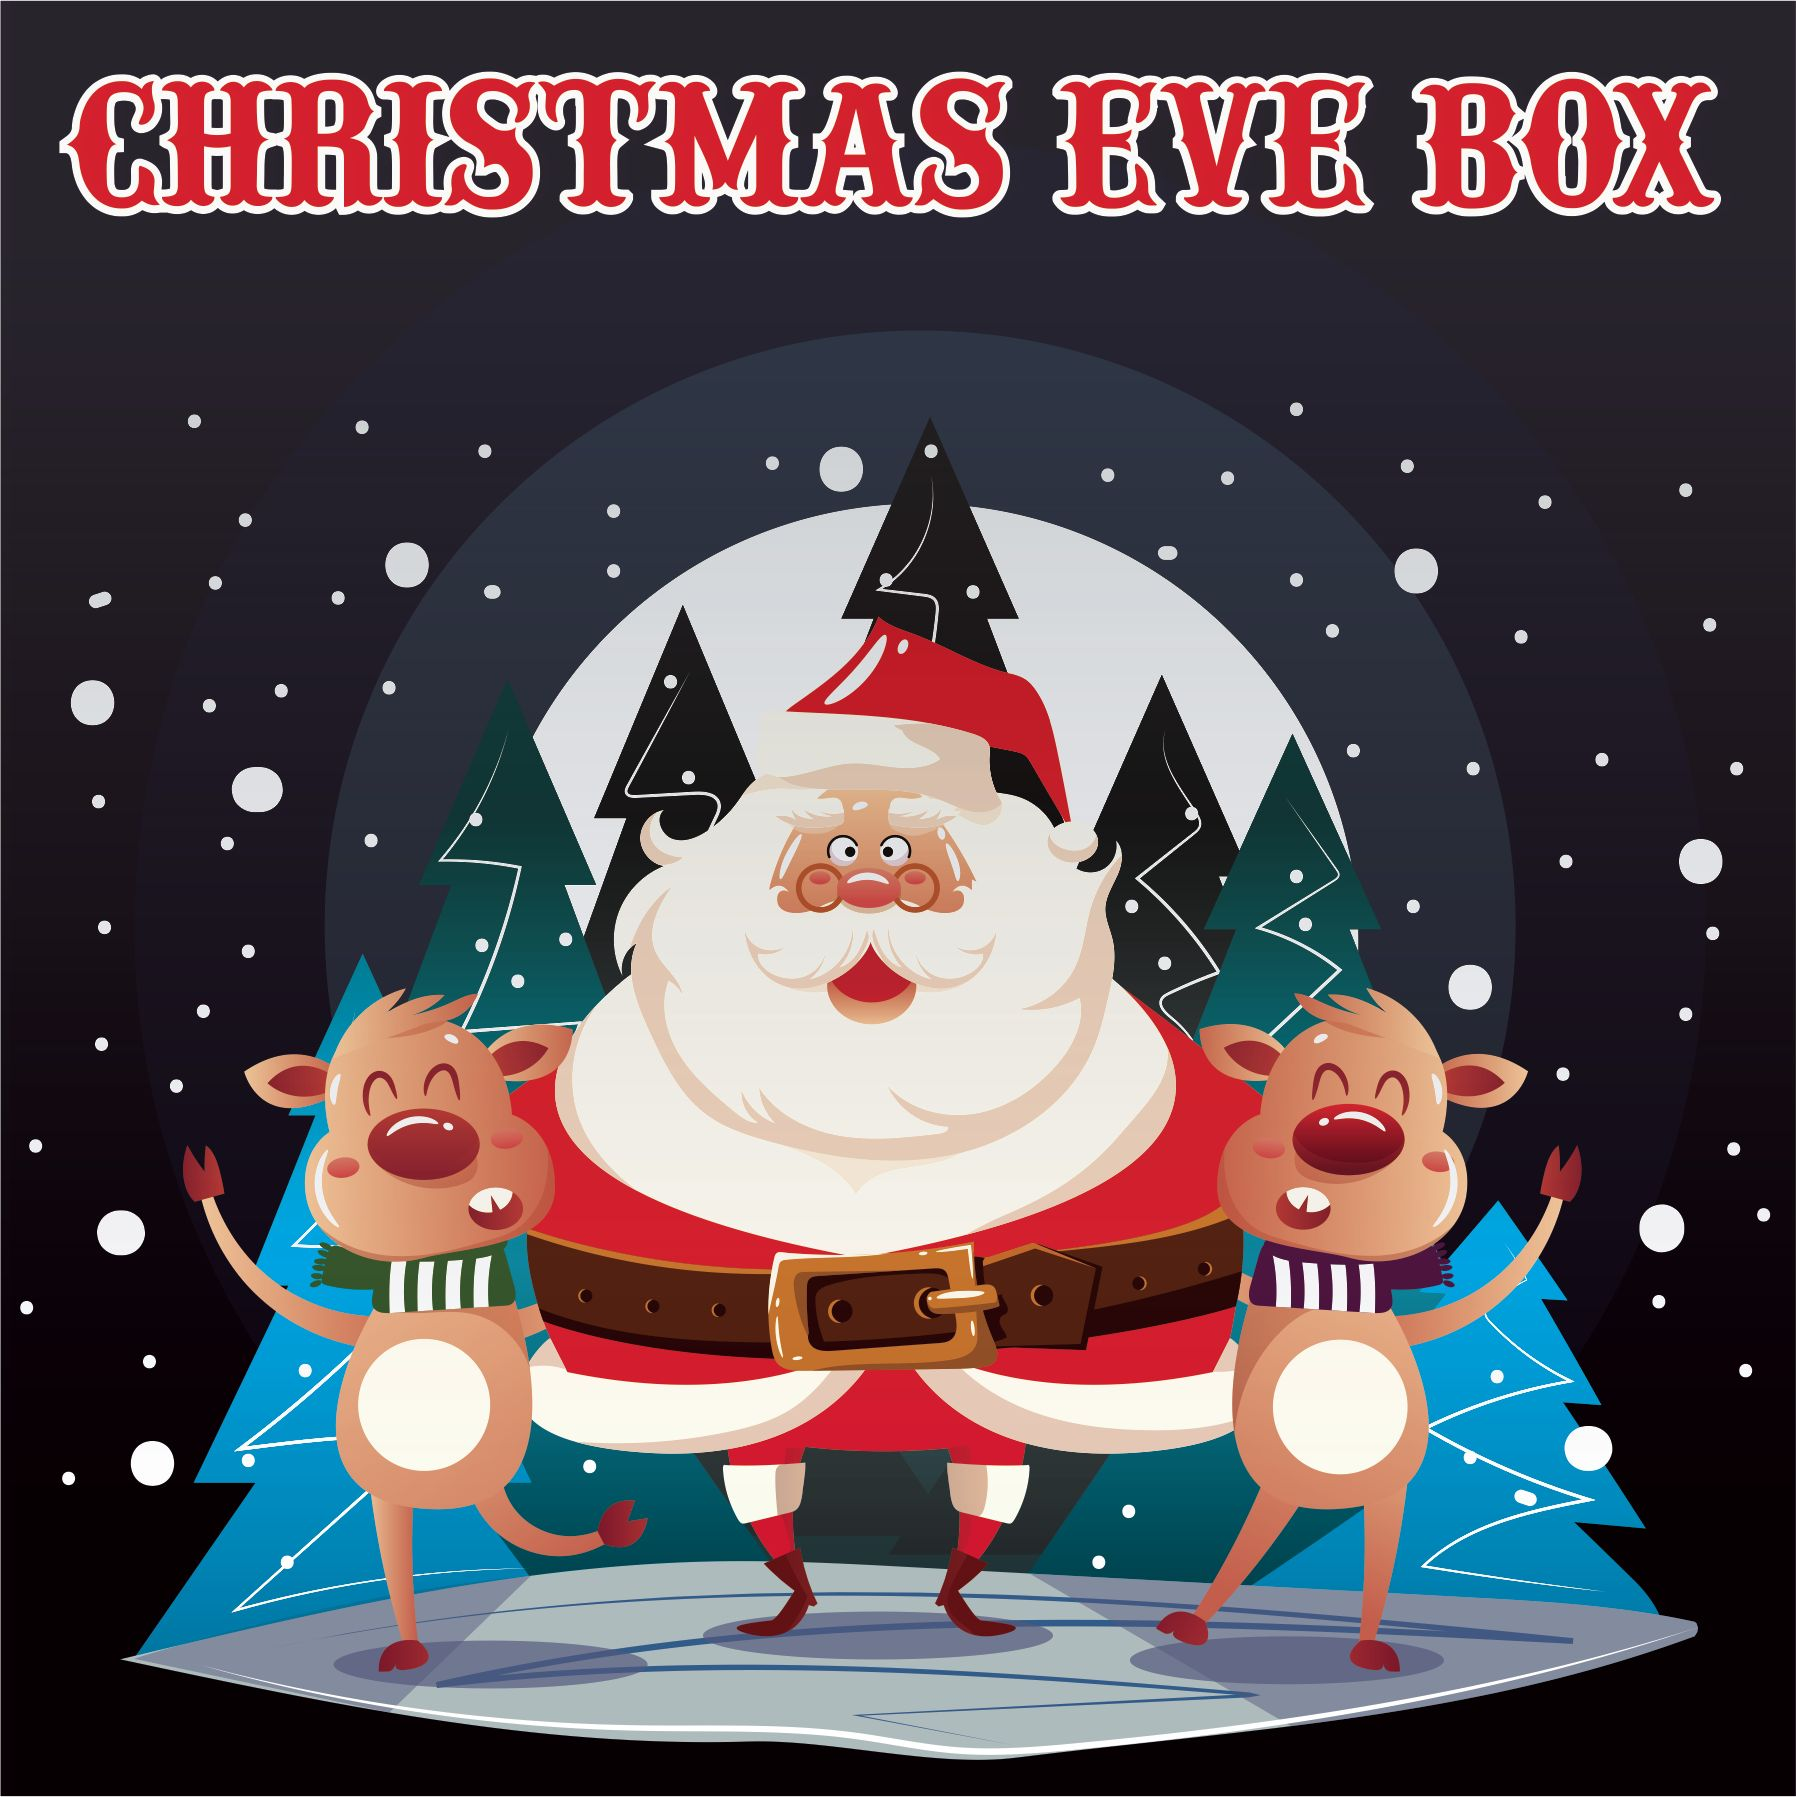 Christmas Eve Images.Christmas Eve Box Labels Santa And Reindeer Vinyl Label 150mm X 150mm